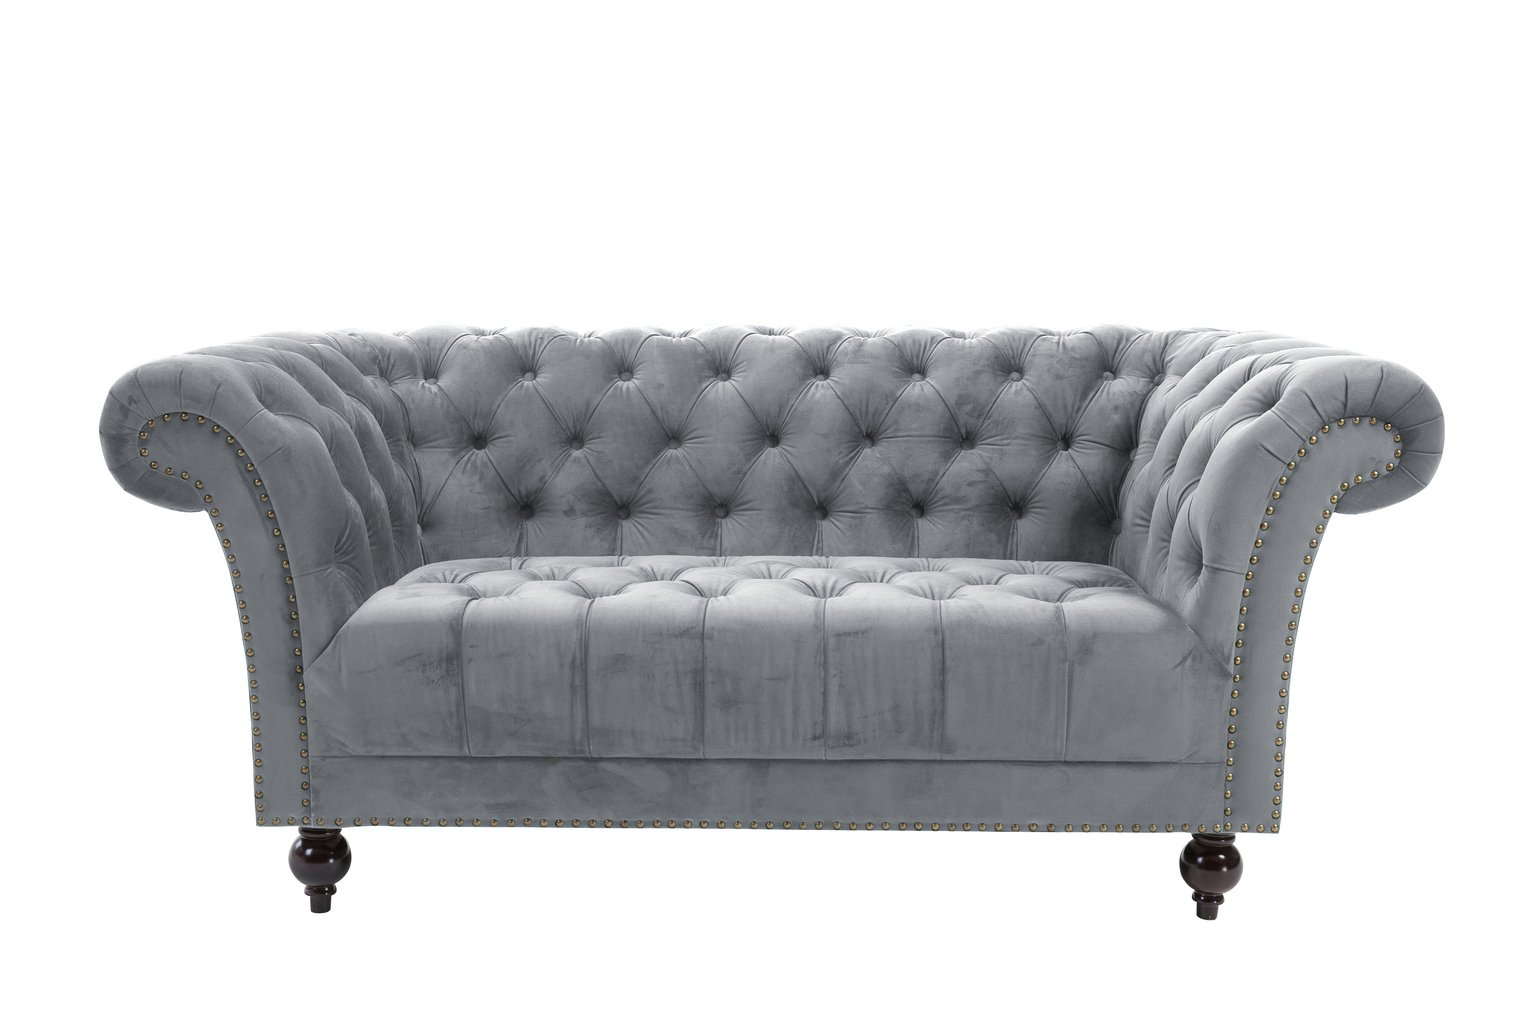 Birlea Chester 2 Seater Fabric Sofa - Grey